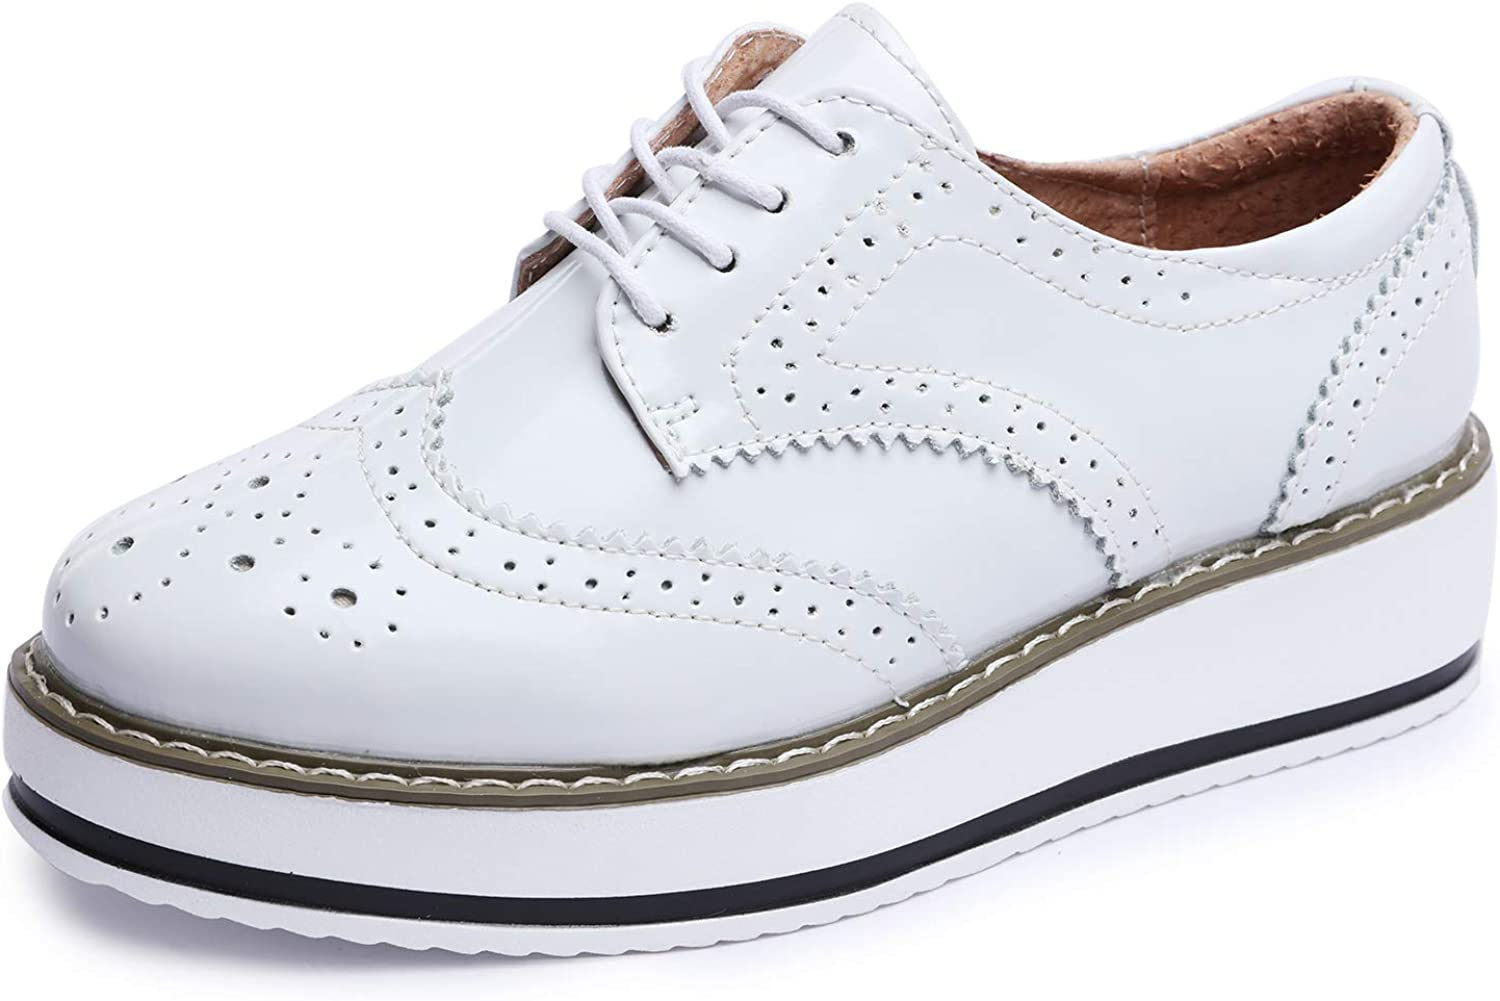 Catata Quality inspection Womens Wingtip Wedges Oxfords Platform Shipping included Brogues Lace-up We